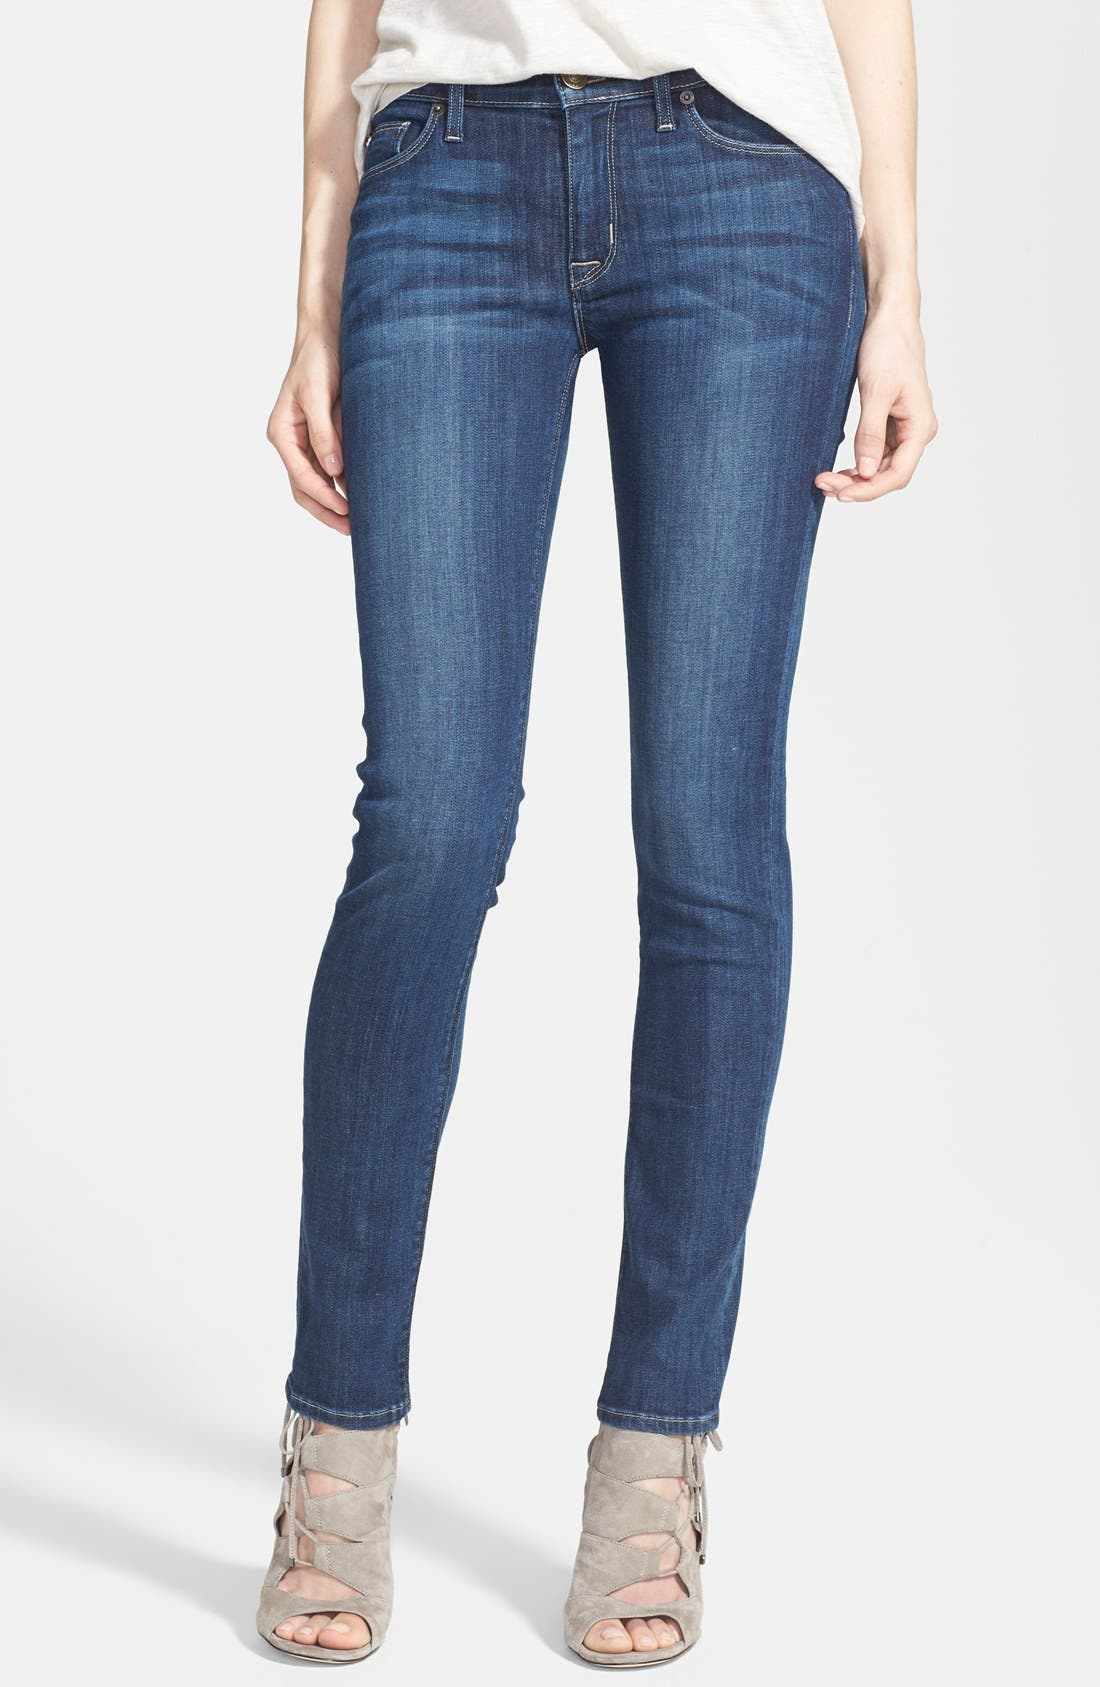 Alternate Image 1 Selected - Hudson Jeans 'Collette' Skinny Jeans (Cascade) (Nordstrom Exclusive)